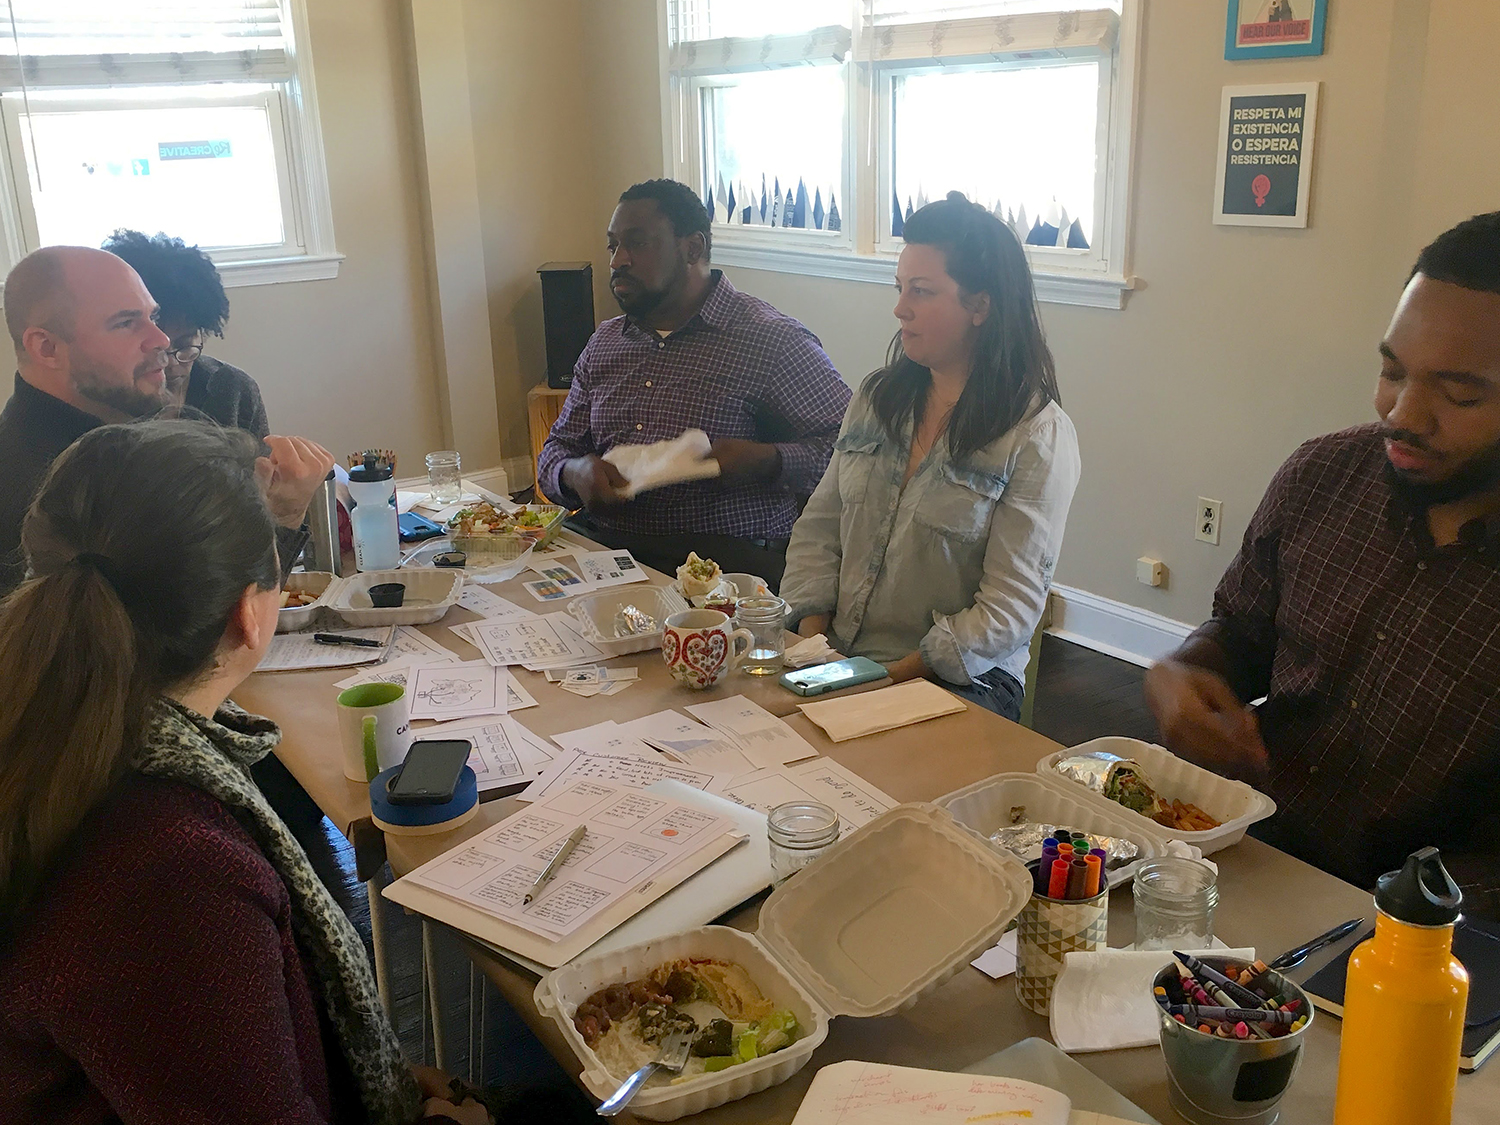 D.C. small business owners charrette